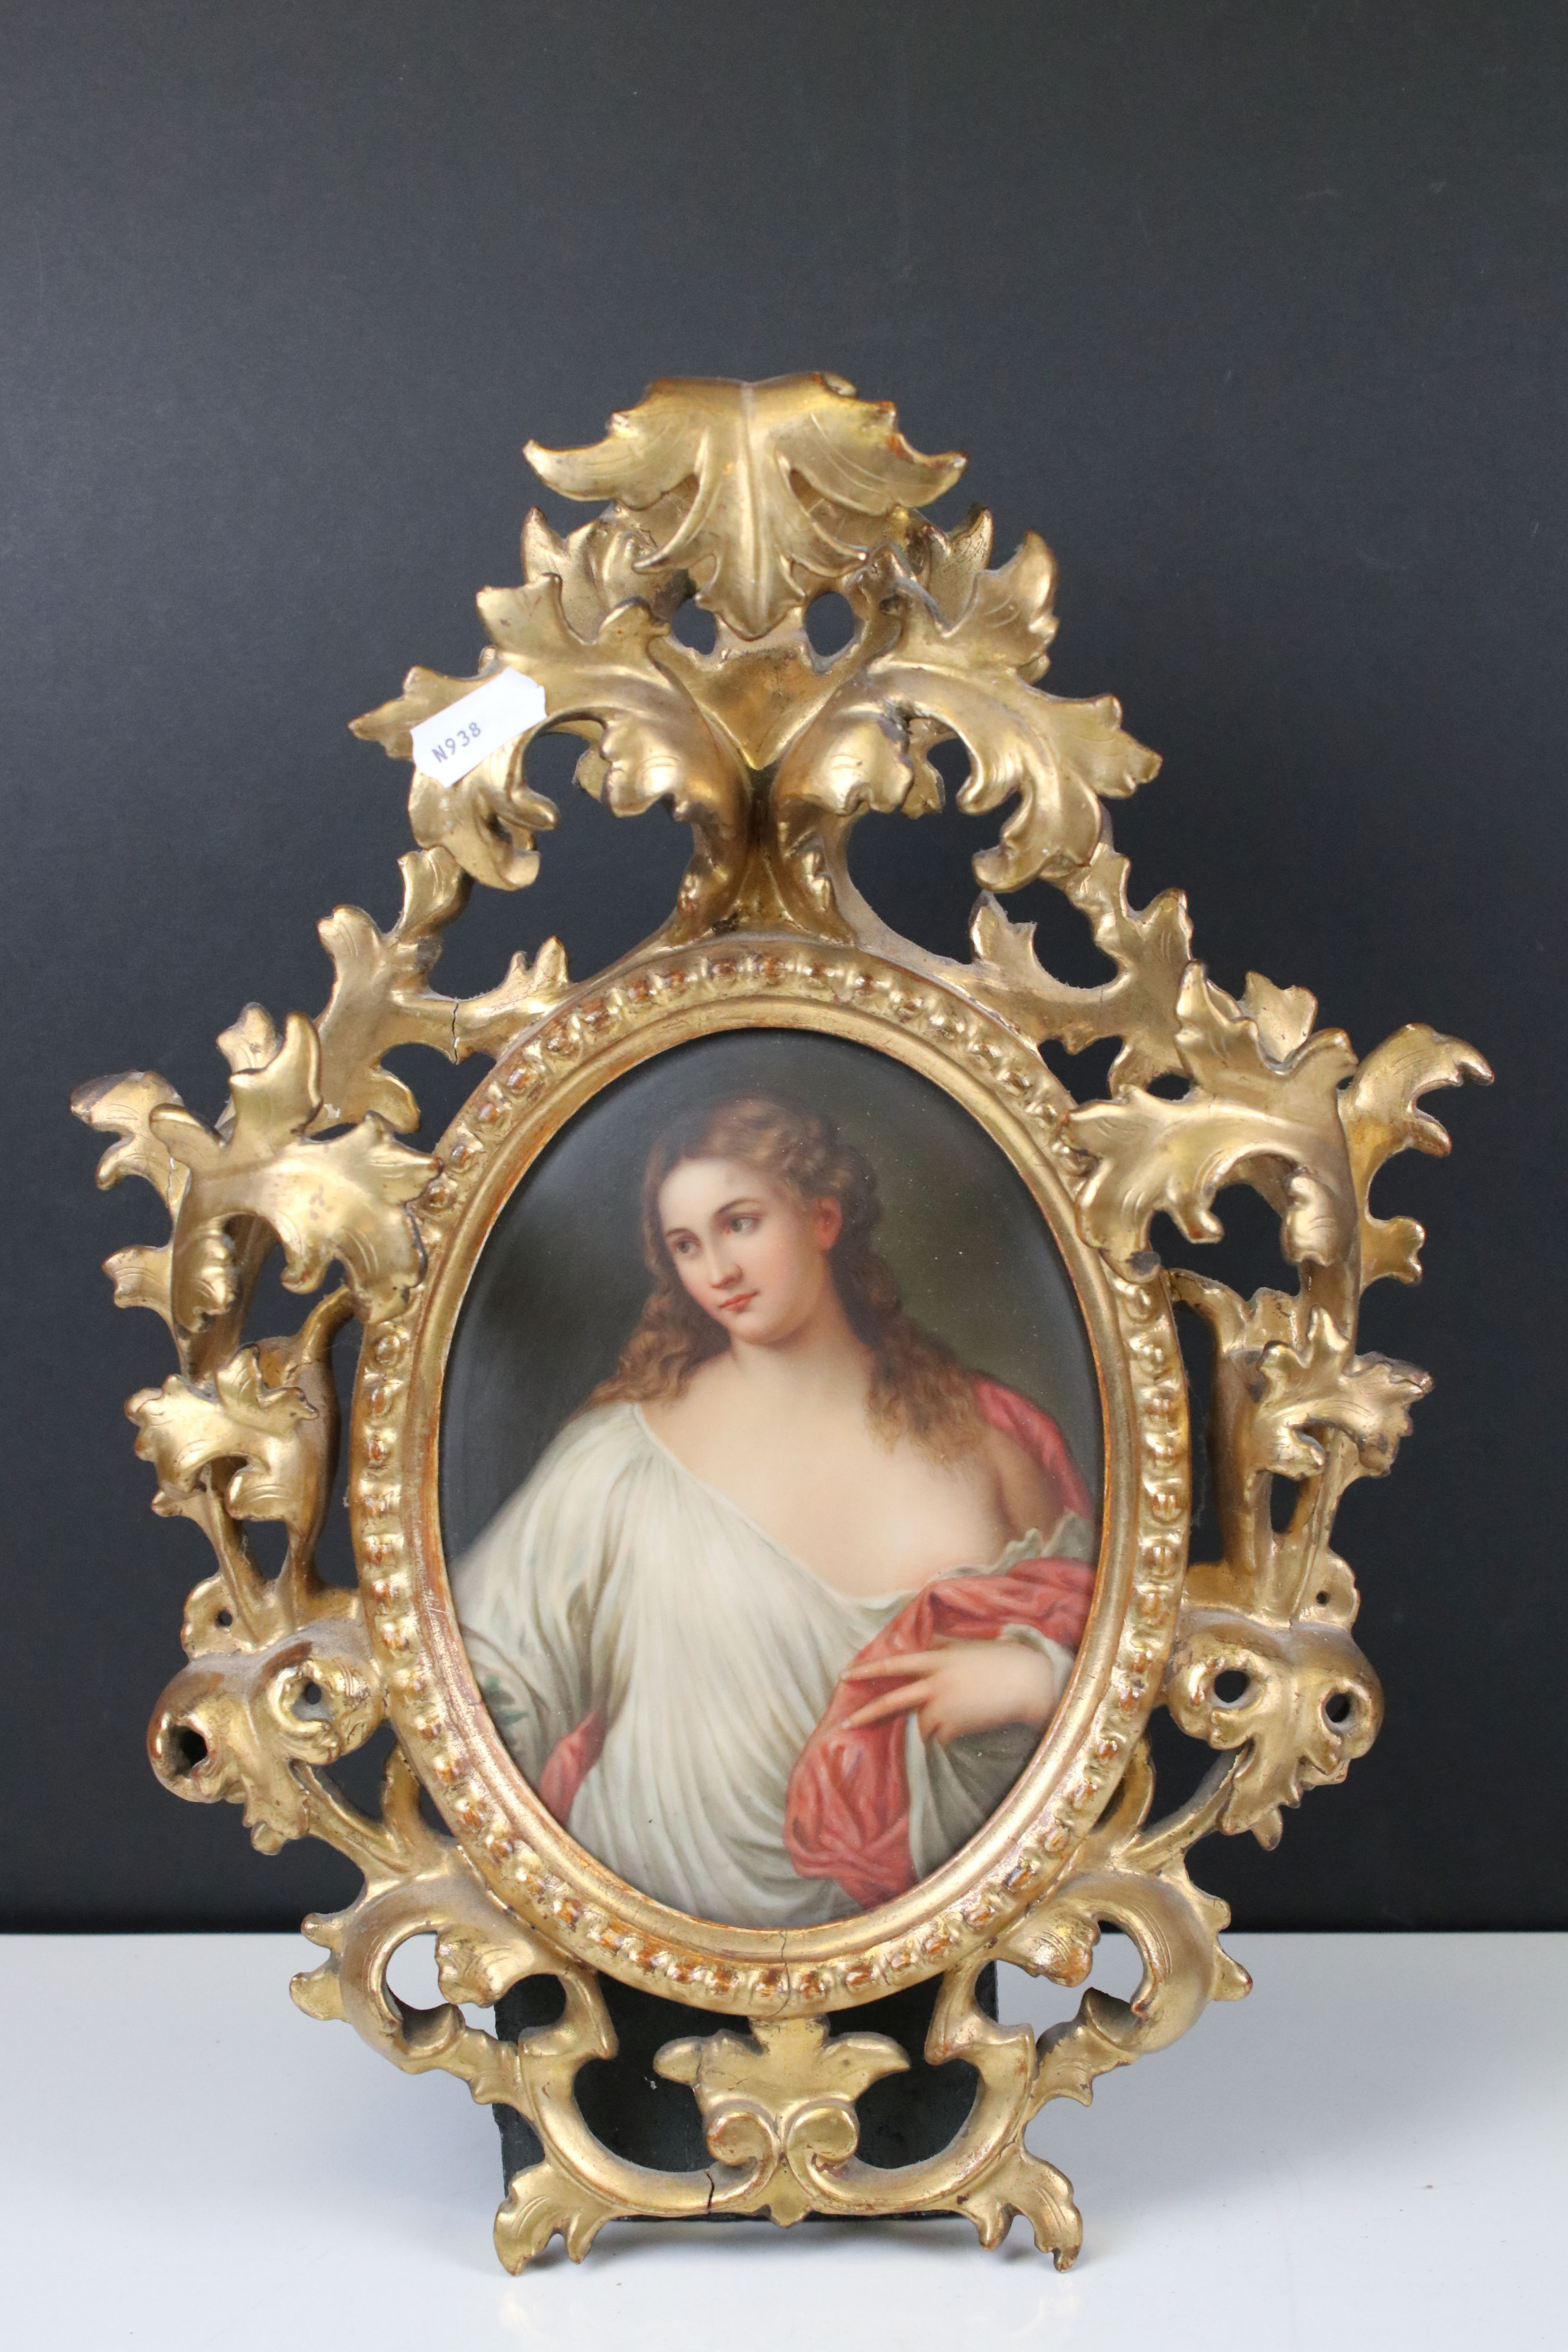 Pair of Late 19th / Early 20th century Oval Ceramic Painted Plaques, one depicting a classical woman - Image 5 of 8